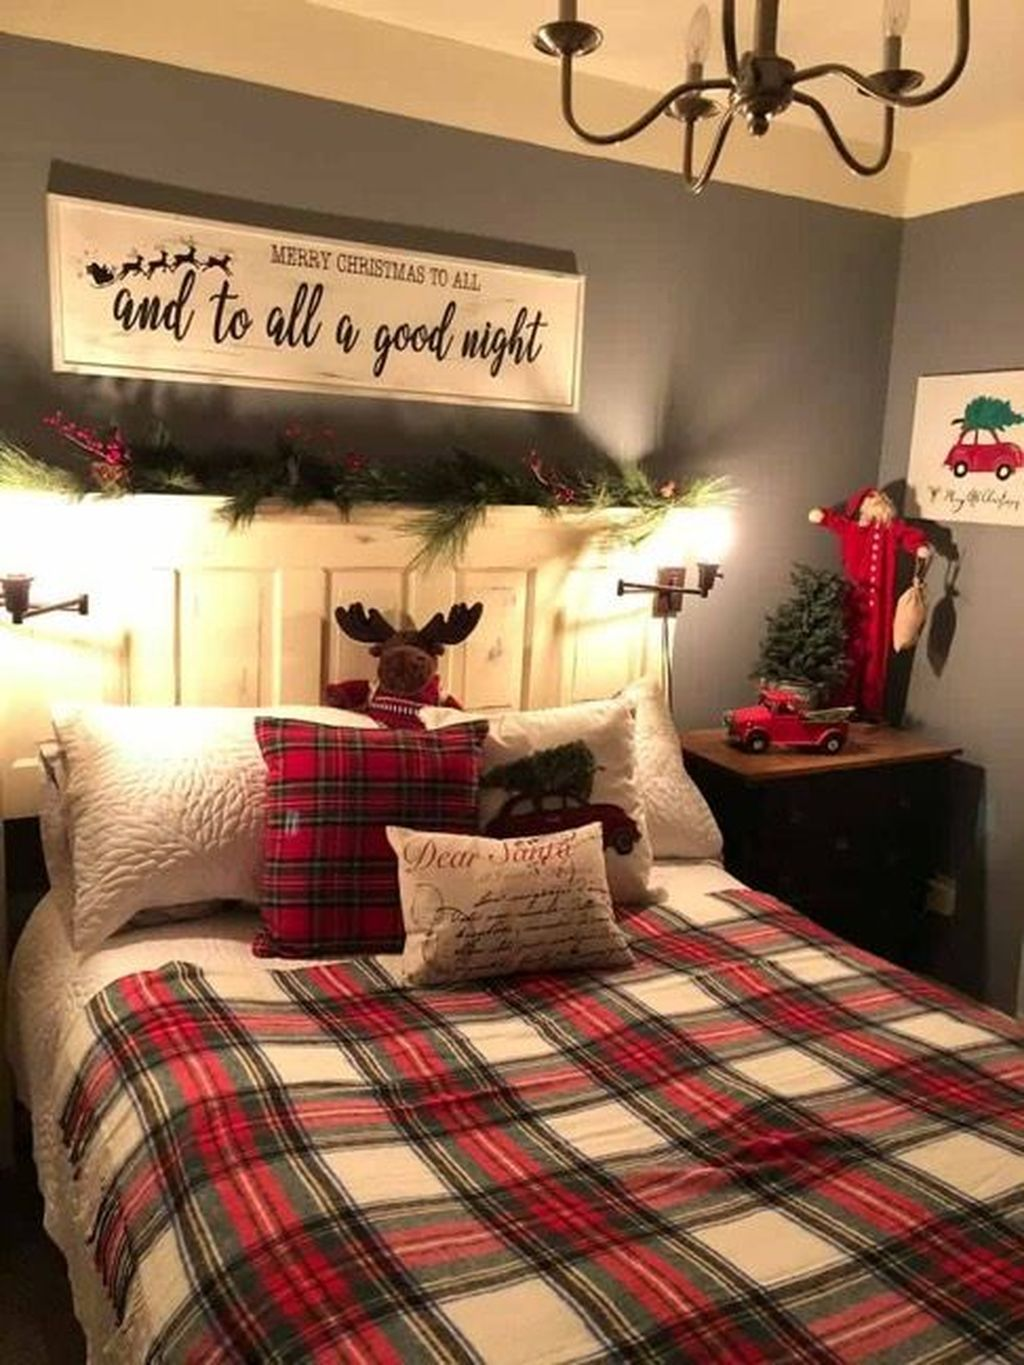 56 Easy Diy Christmas Decorations Ideas For Bedroom In 2020 With Images Christmas Bedroom Christmas Apartment Christmas Decorations Rustic